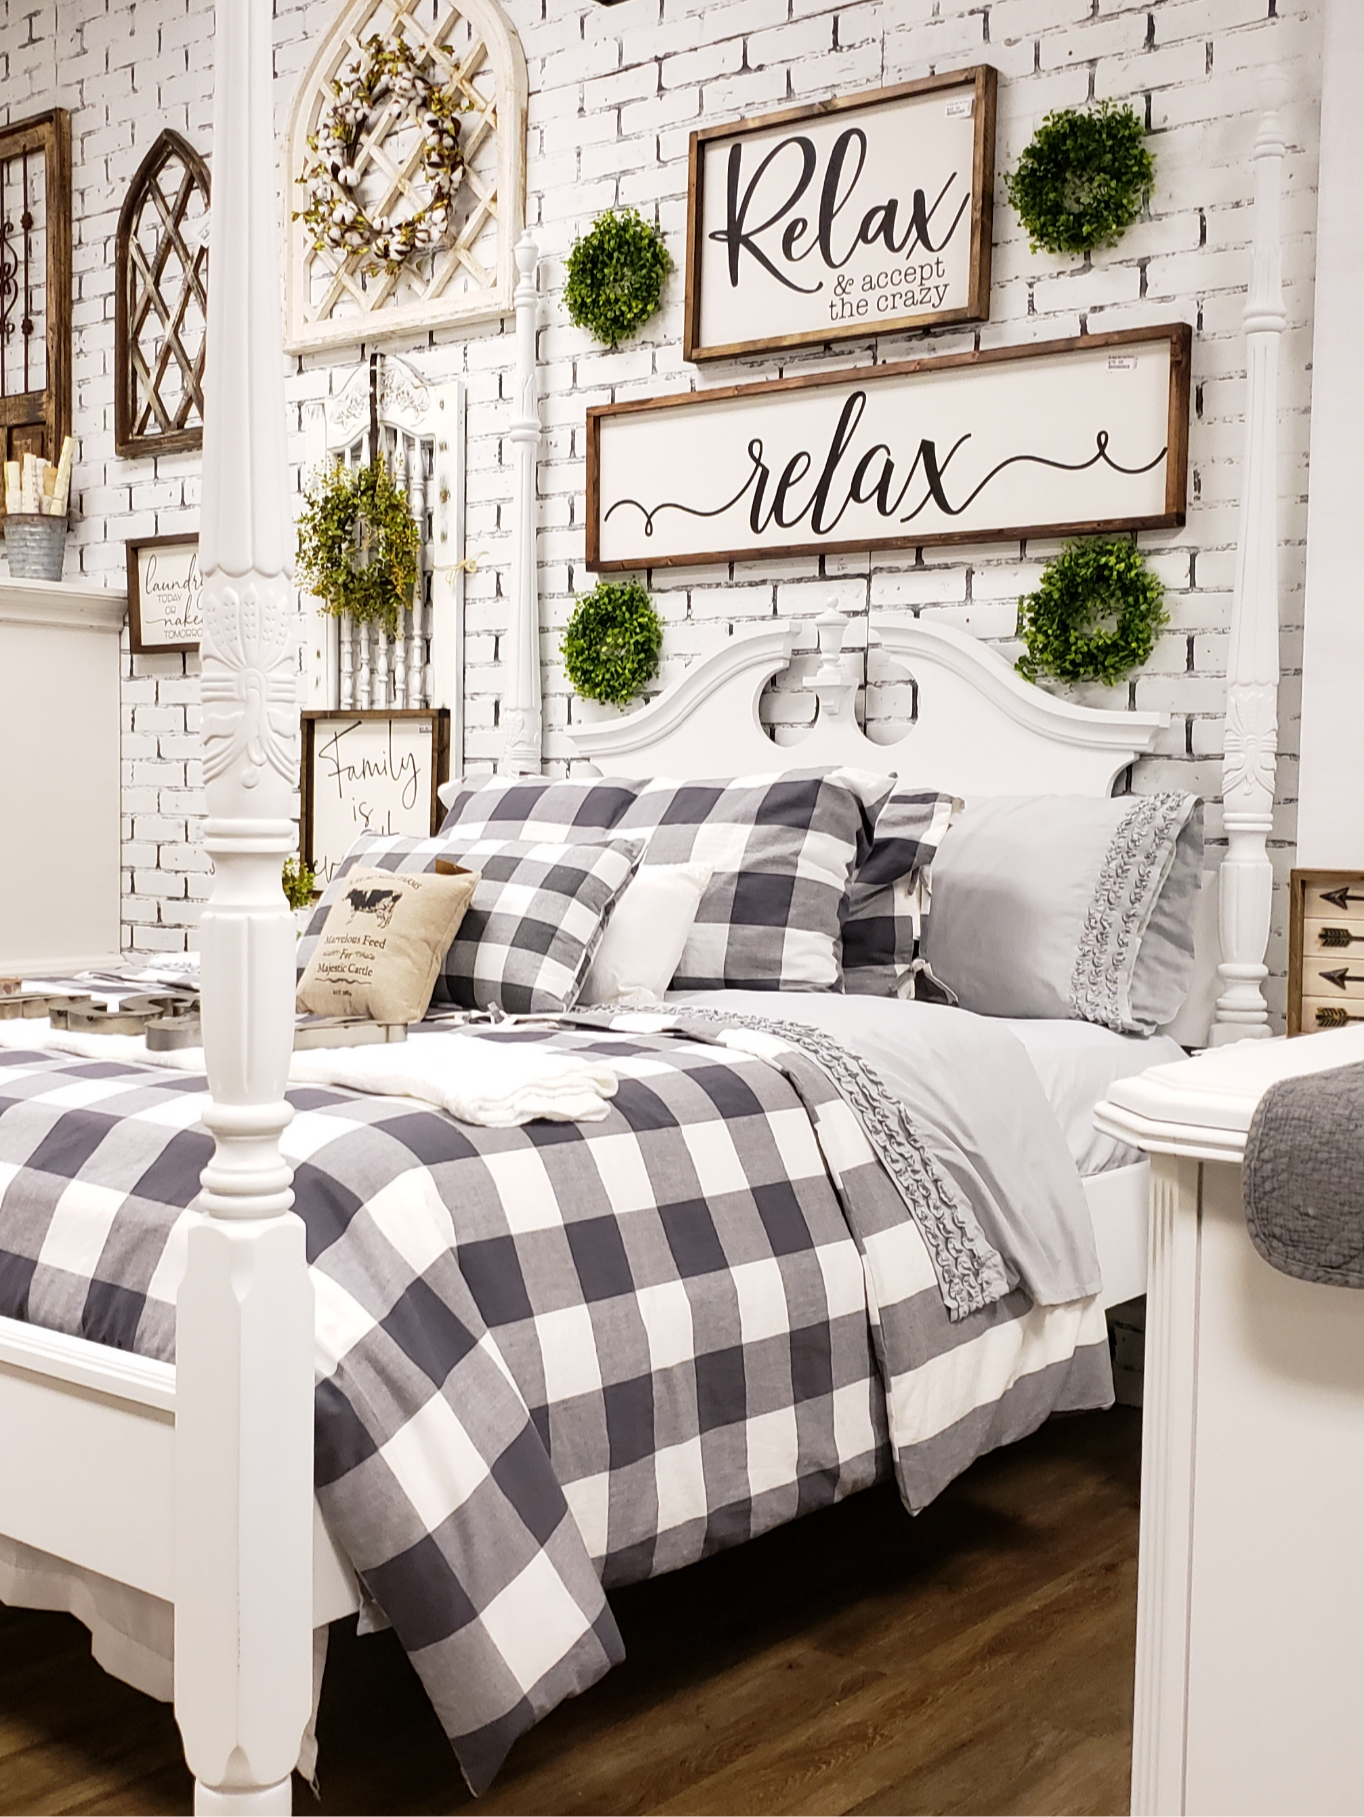 Home Store Booth Styling and Biz Tips